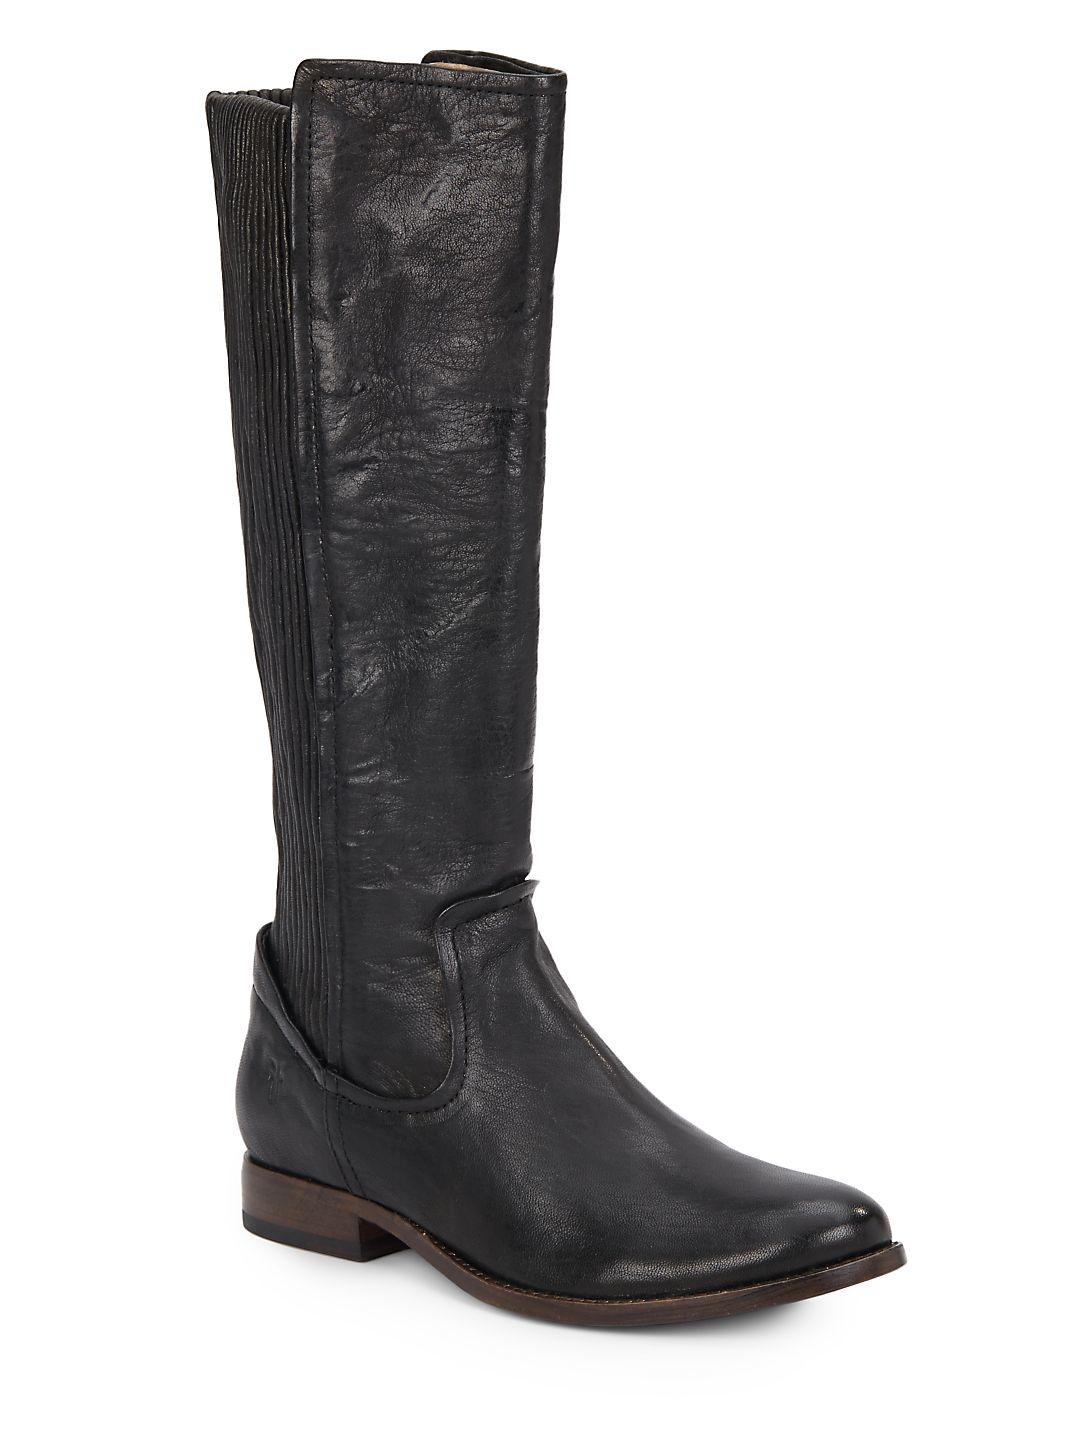 Frye Melissa Knee-high Leather Boots